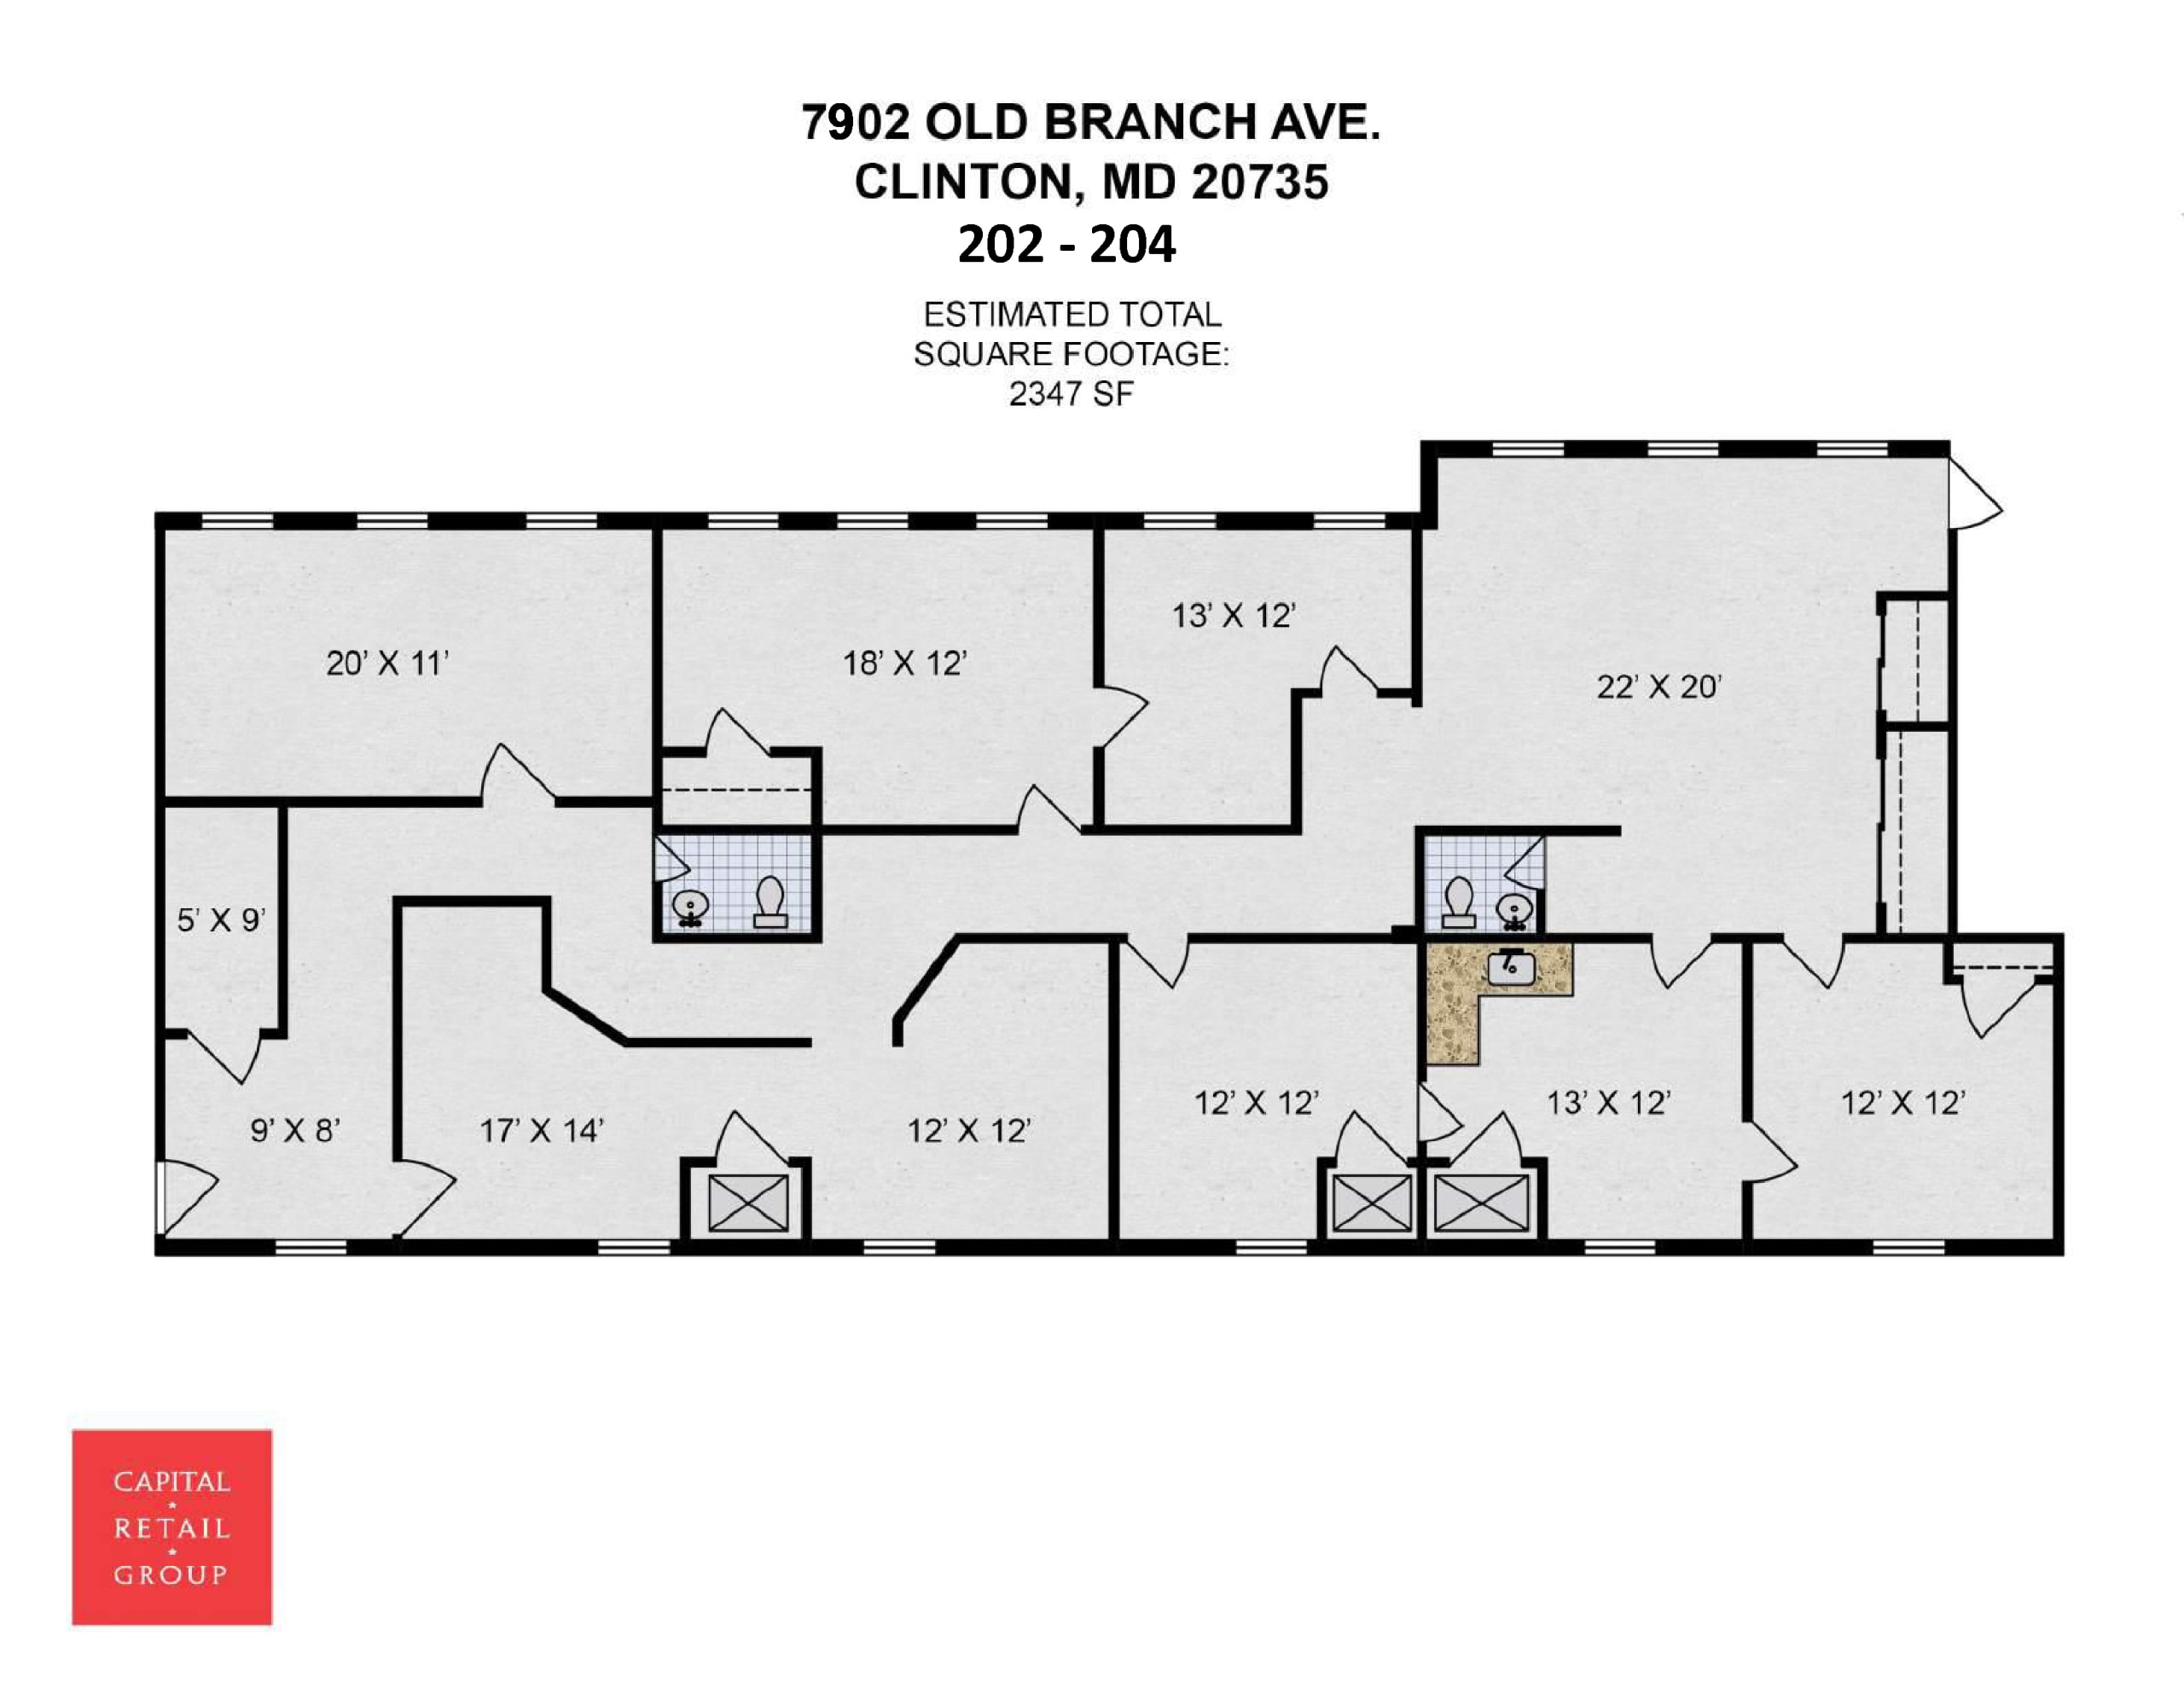 7902 Old Branch Ave #202-204